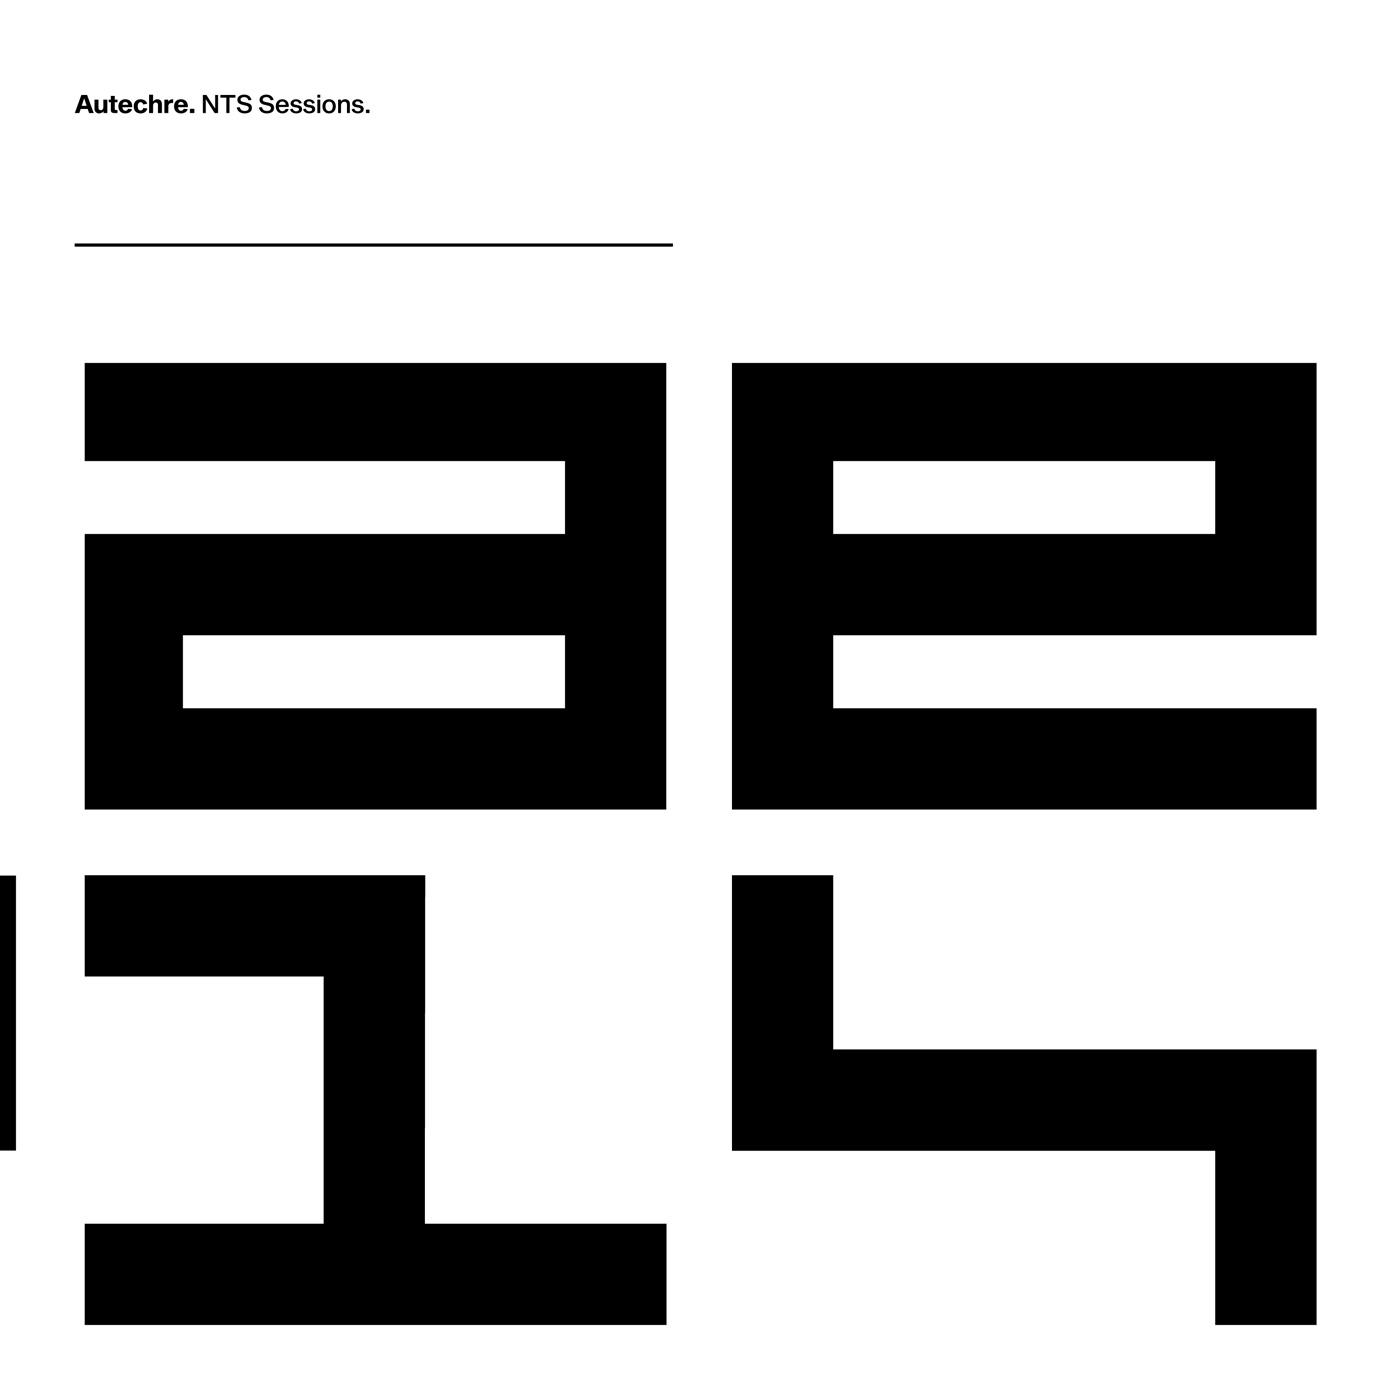 Autechre - NTS Sessions [Indie Exclusive Limited Edition 12LP]